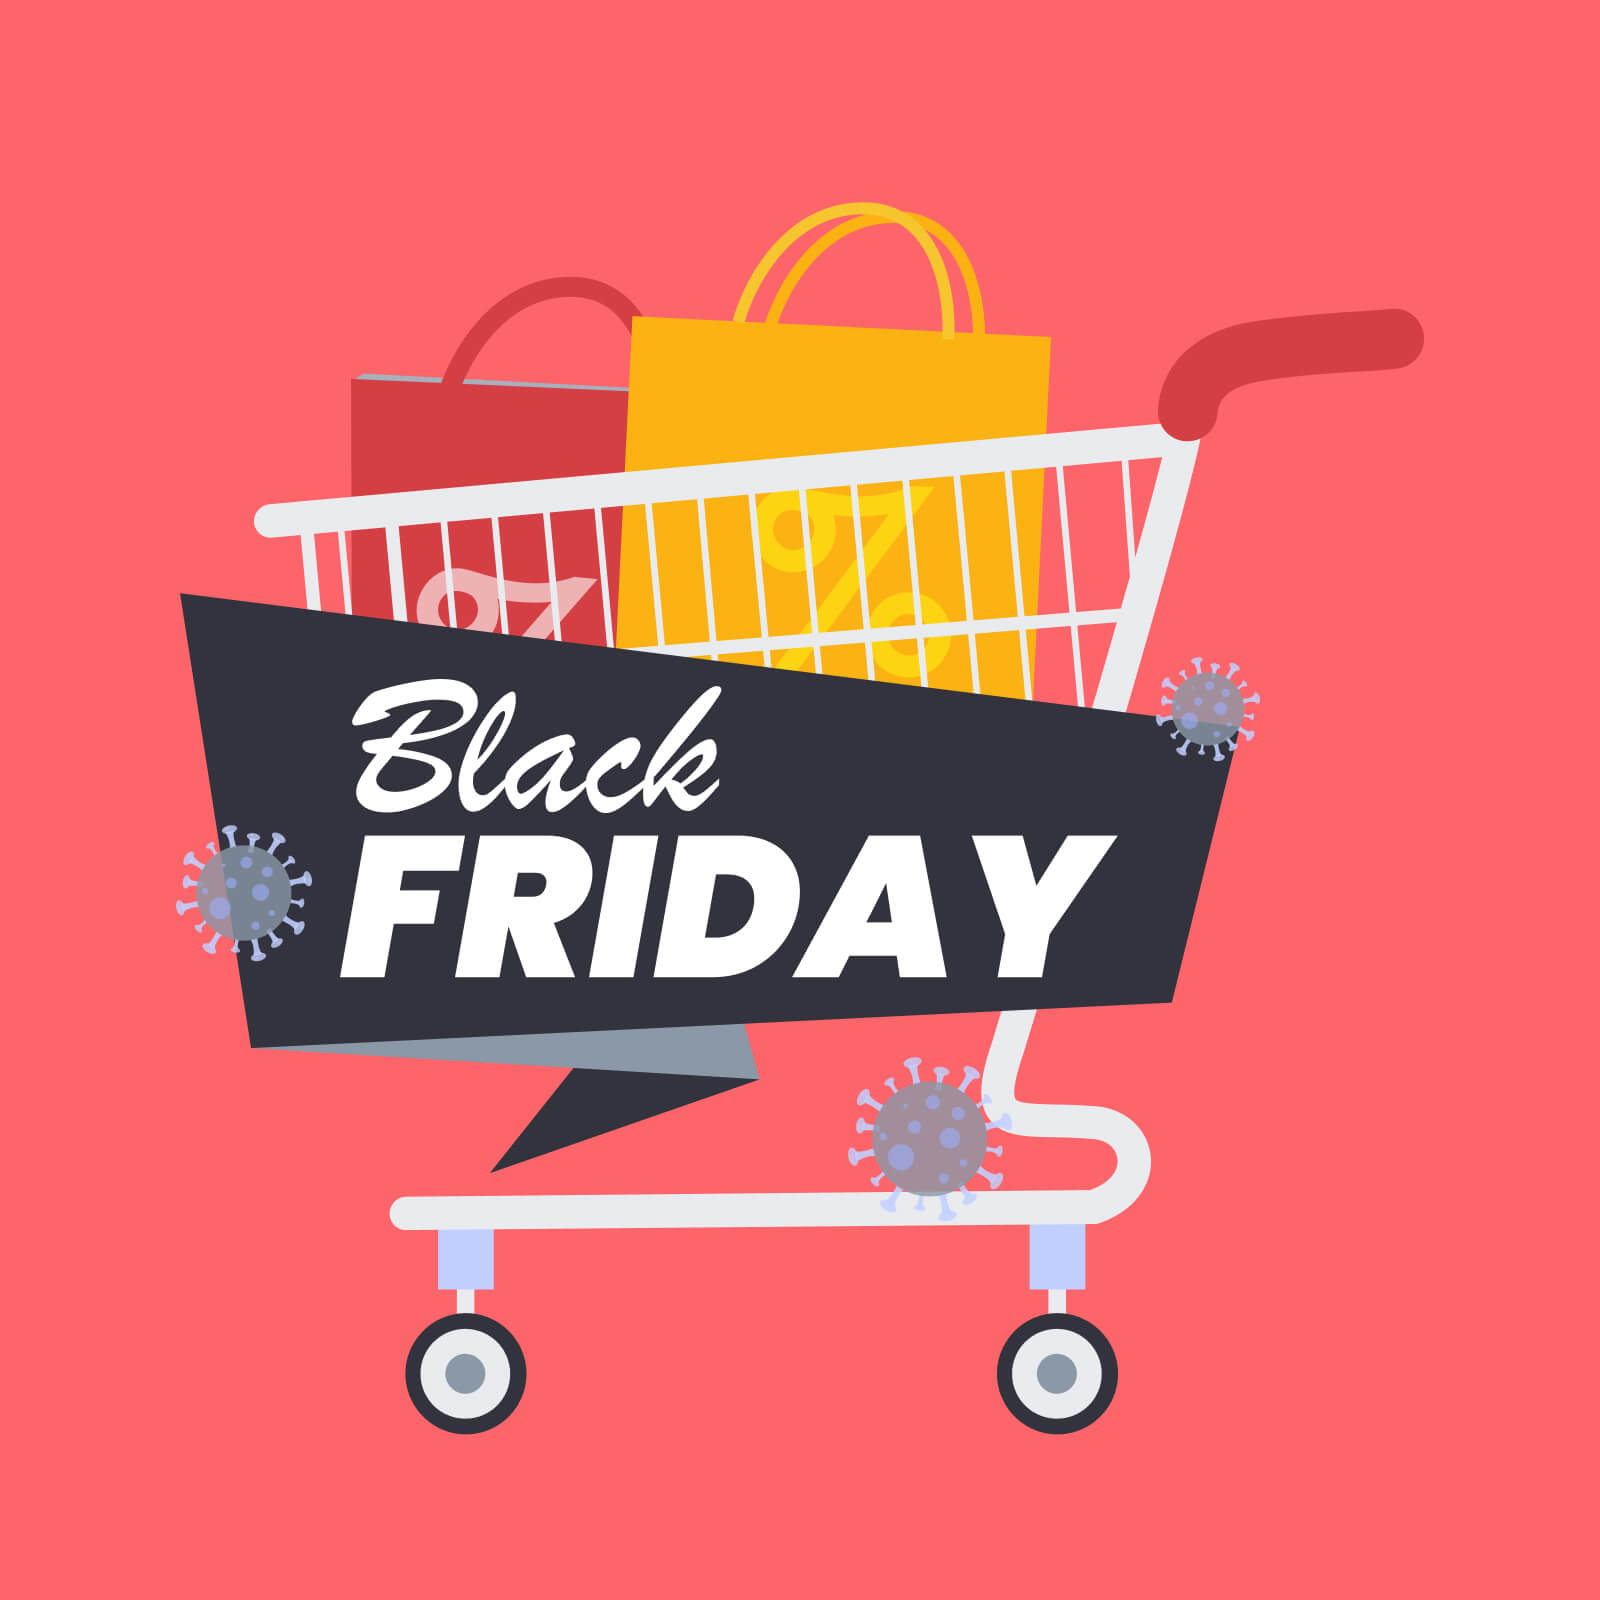 Black Friday 2020 and COVID 19